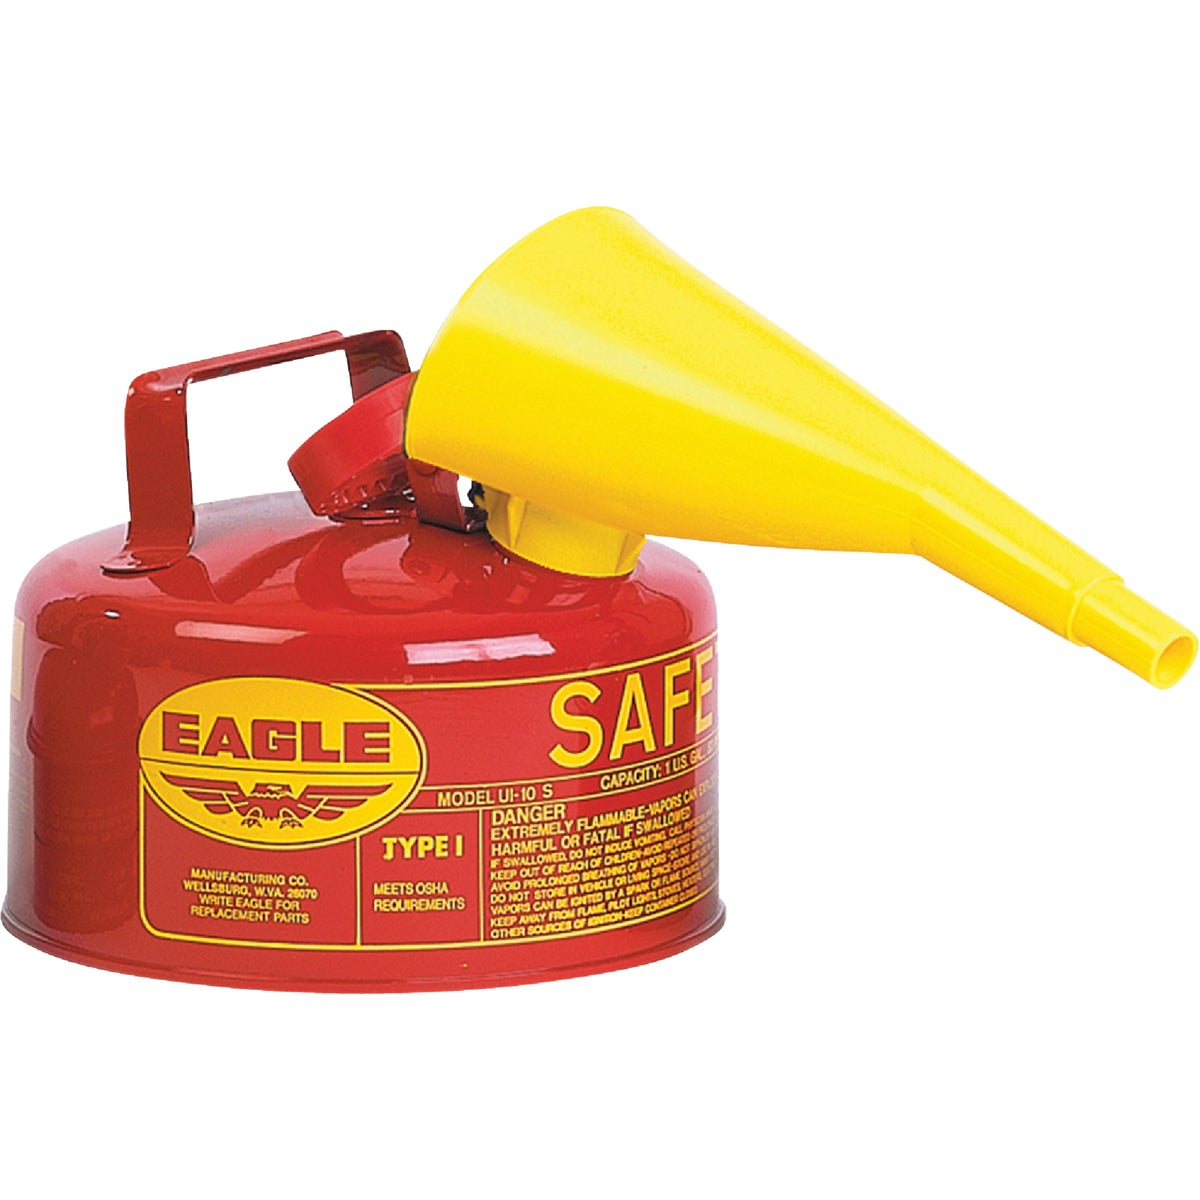 RED 1GAL GAS SAFETY CAN